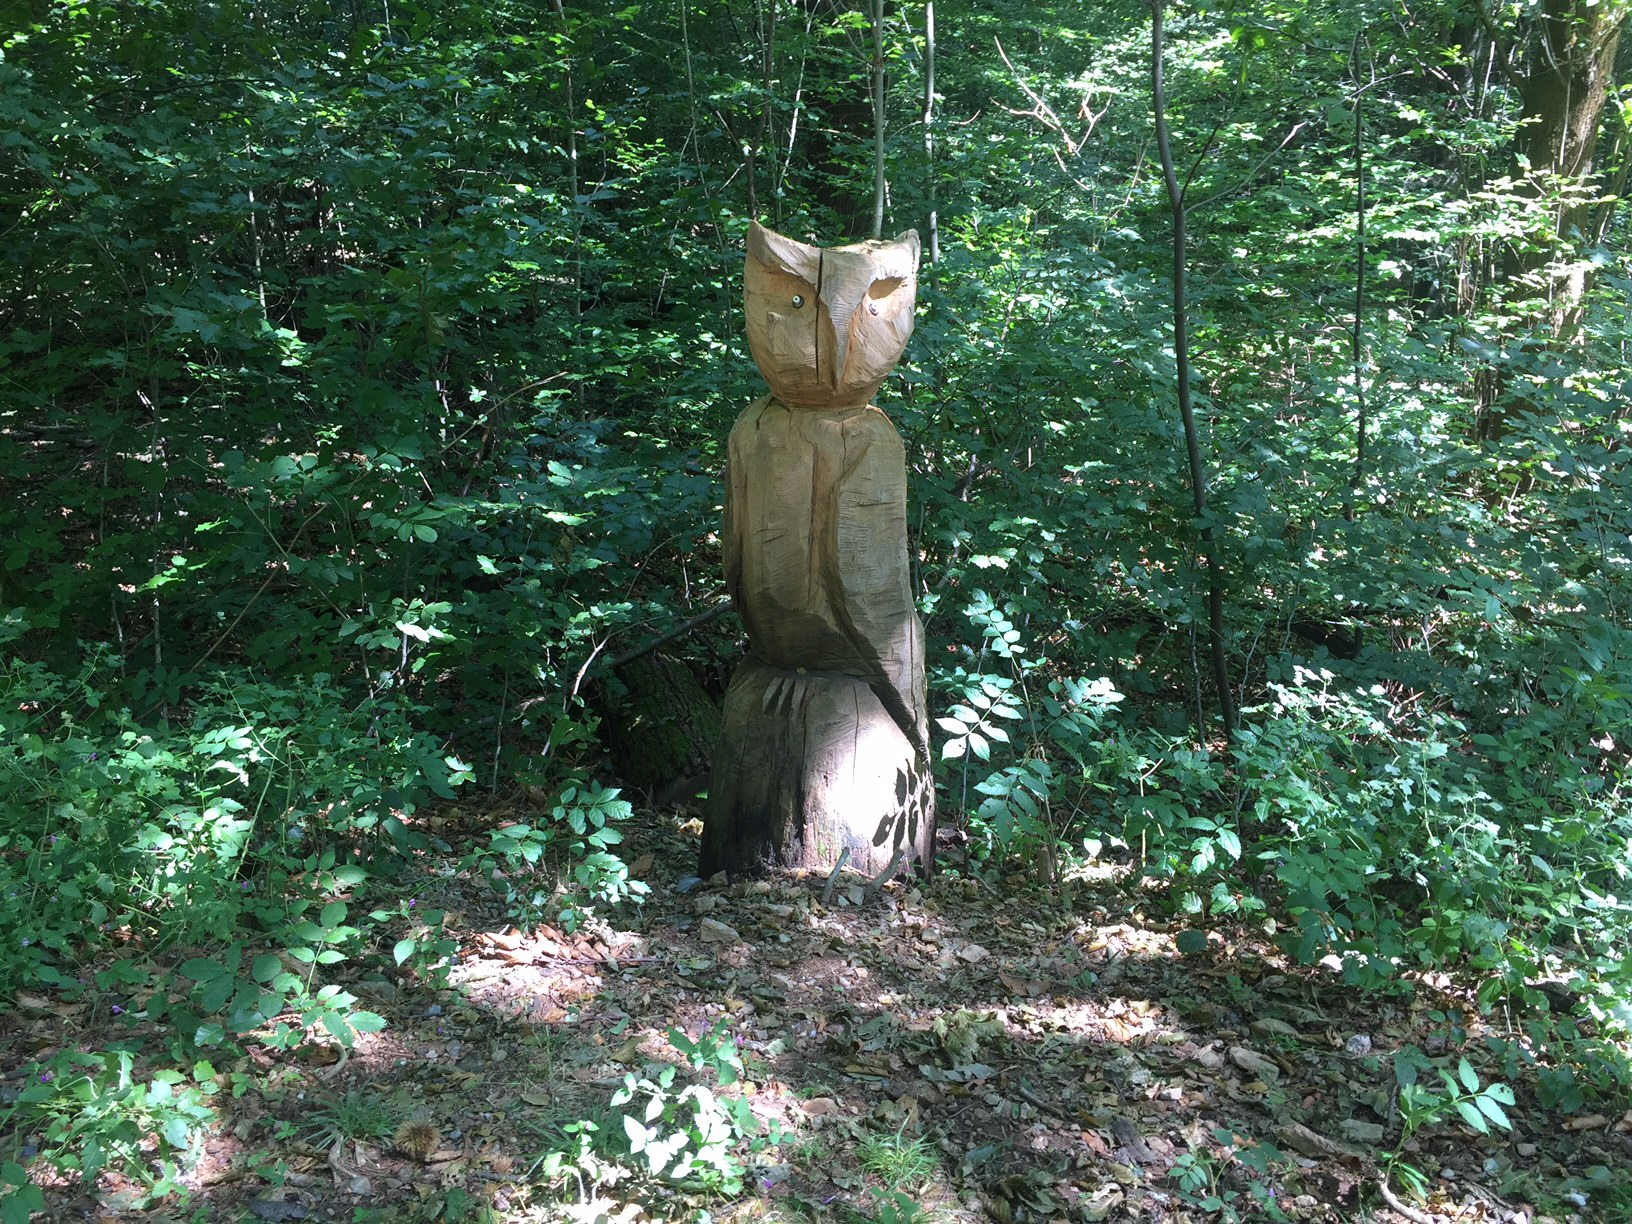 sculptures along the trail